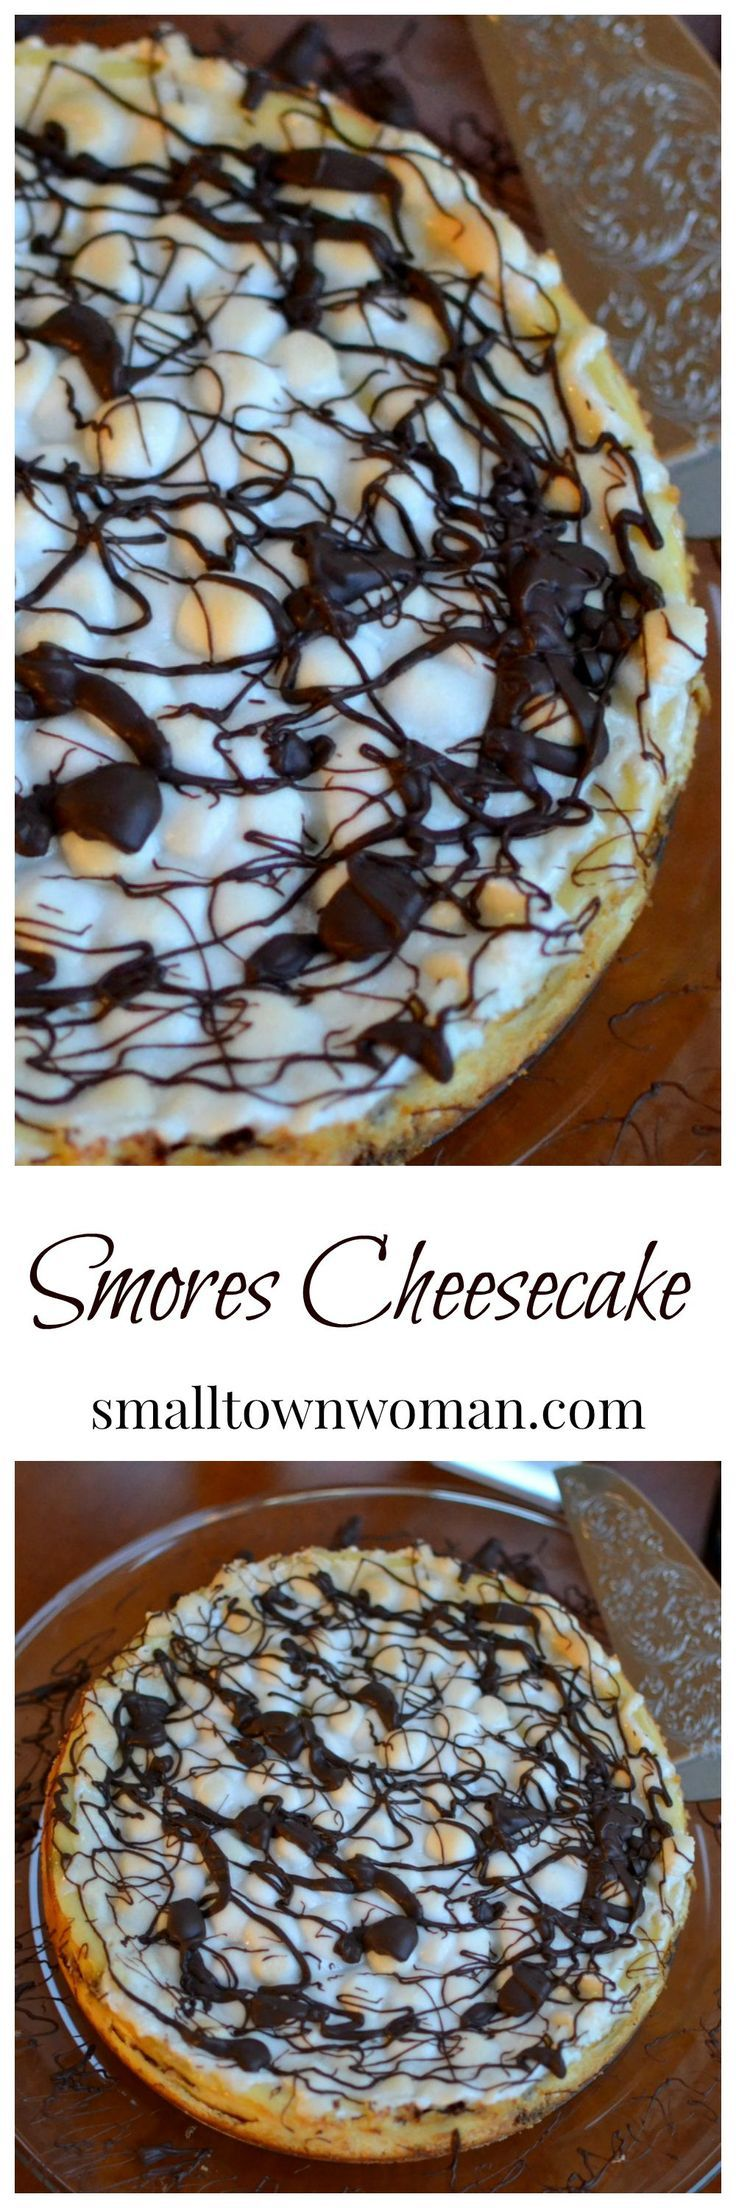 This cheesecake is a cinch to make and tastes fantastic!   Are you having company over for the holiday?  This makes for a wonderful presentation.